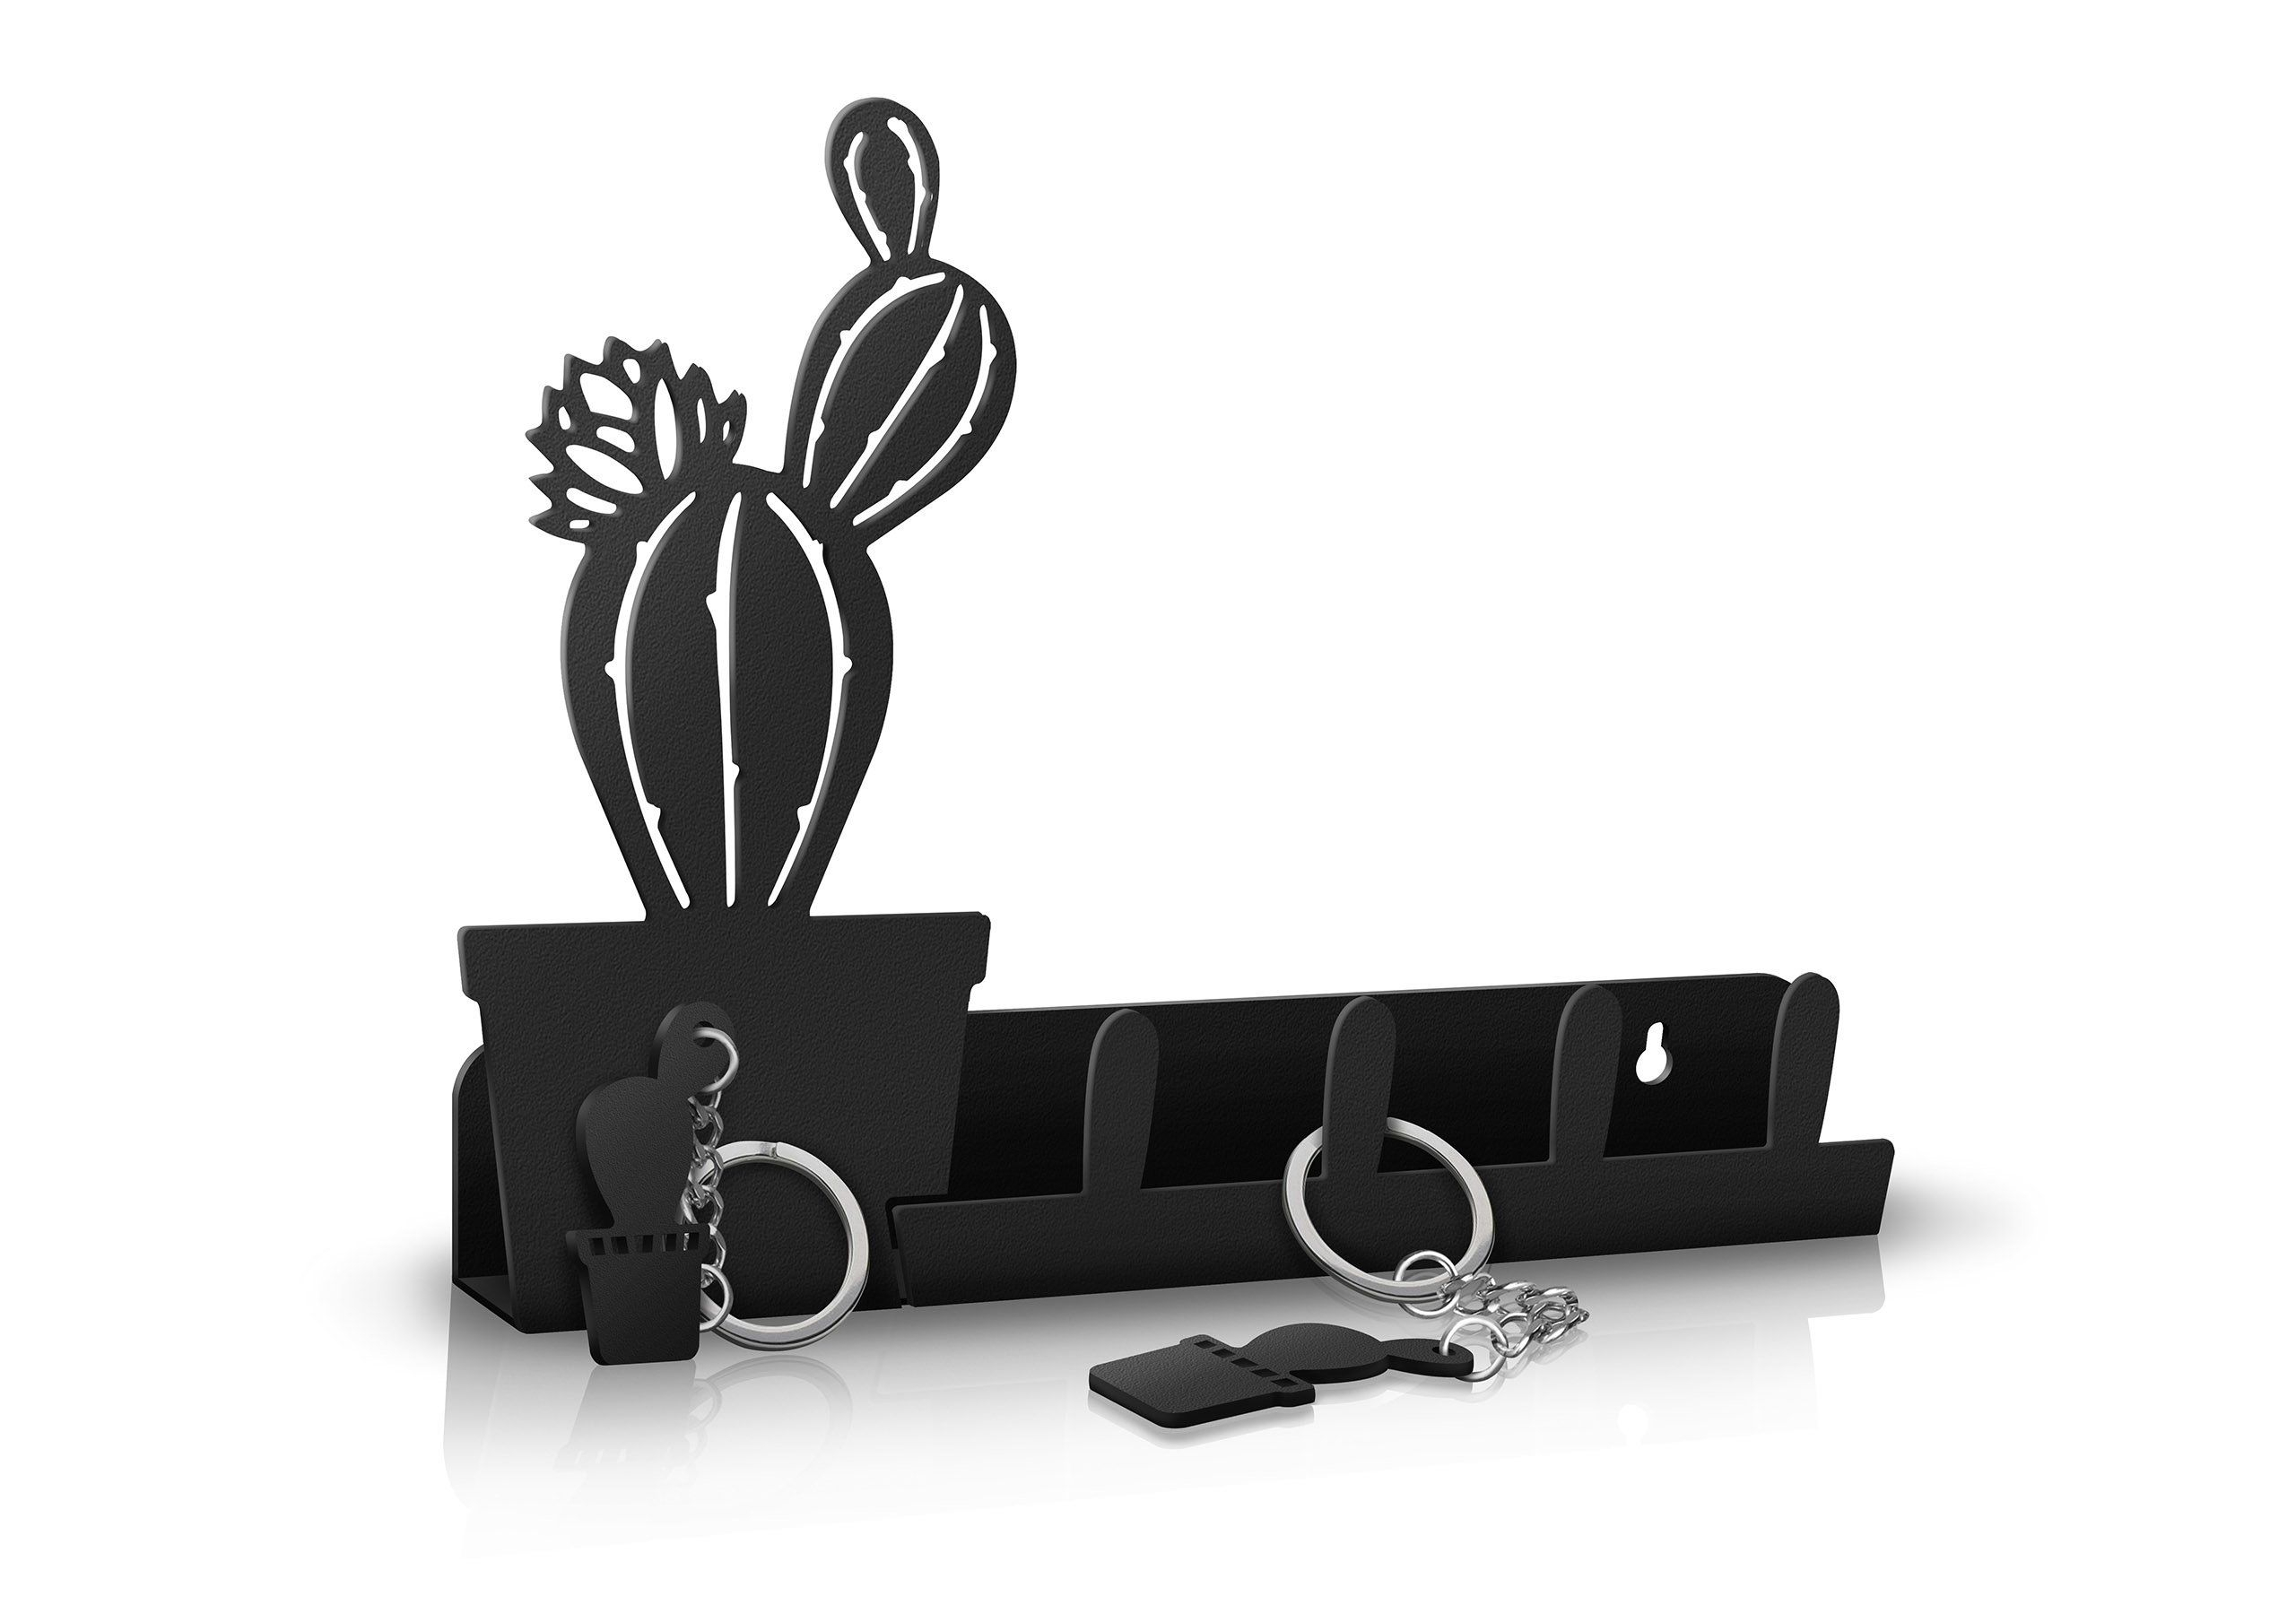 Kukupua Cactus Wall Key Holder Mail Organizer Decorative Key With Black Metal Key Wall Decor (Photo 19 of 30)